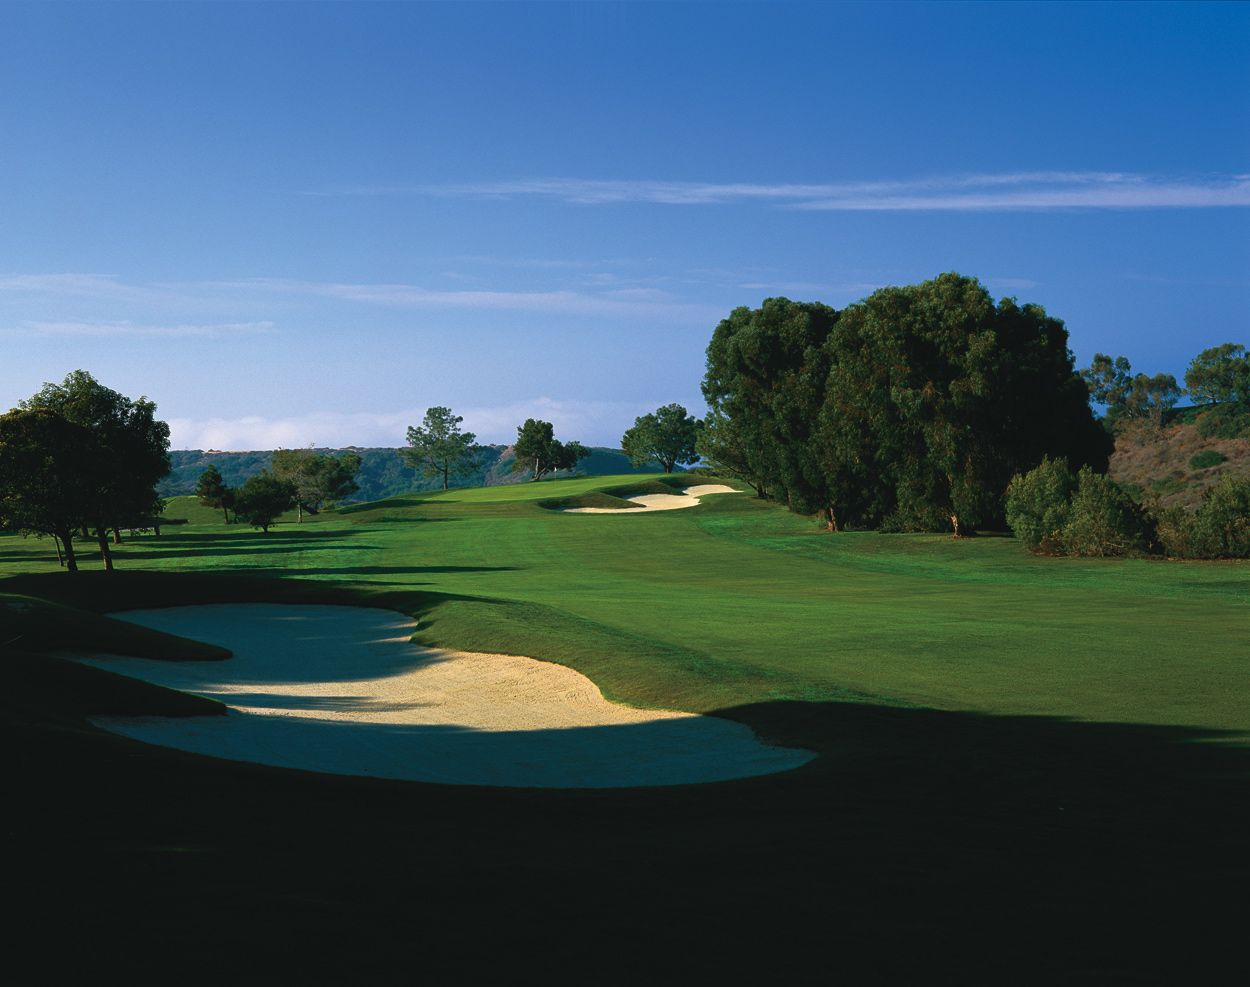 Pin By Kevin Rusch On Golf Courses Golf Courses Golf Best Golf Courses